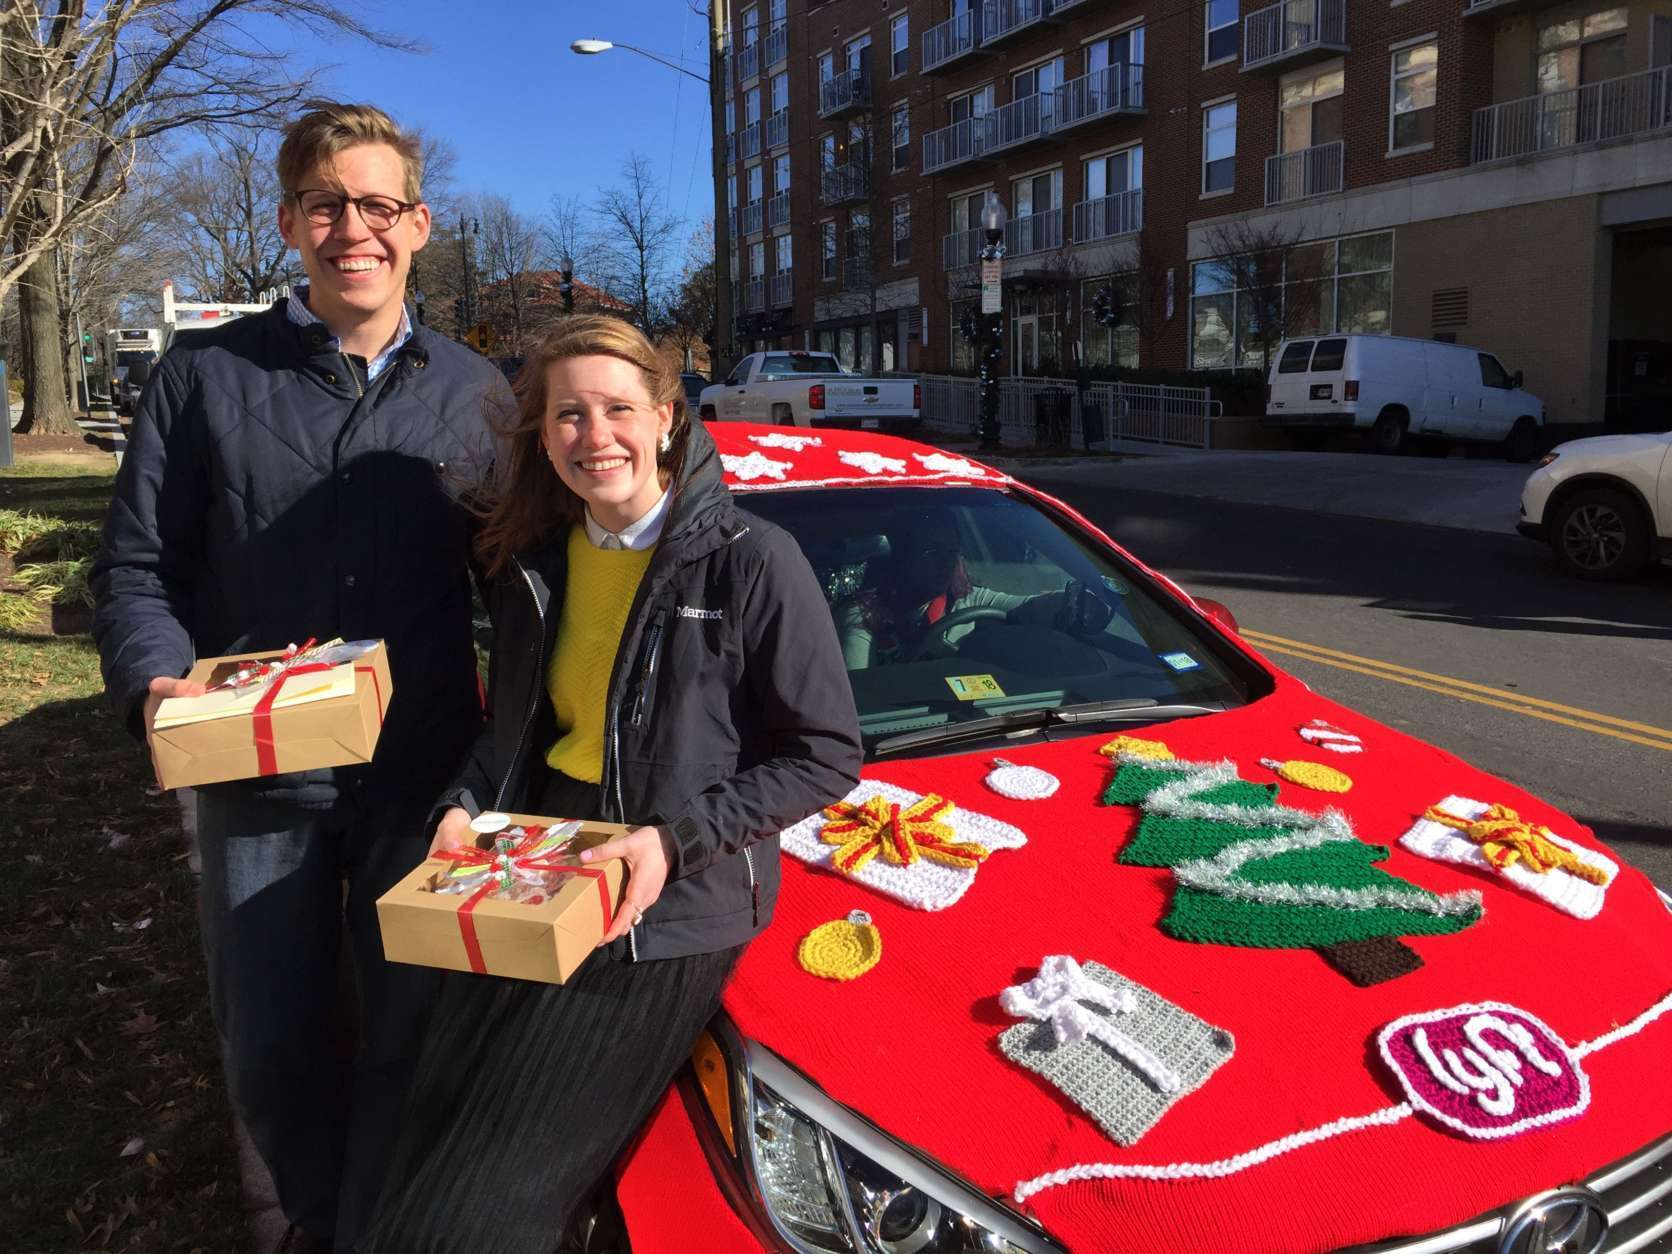 Justin Johansen, of McLean, and Kelly Loggins, of Vienna, happened to be walking by when a Lyft Merry Mode car visited WTOP. They found it highly entertaining.  (WTOP/Kristi King)